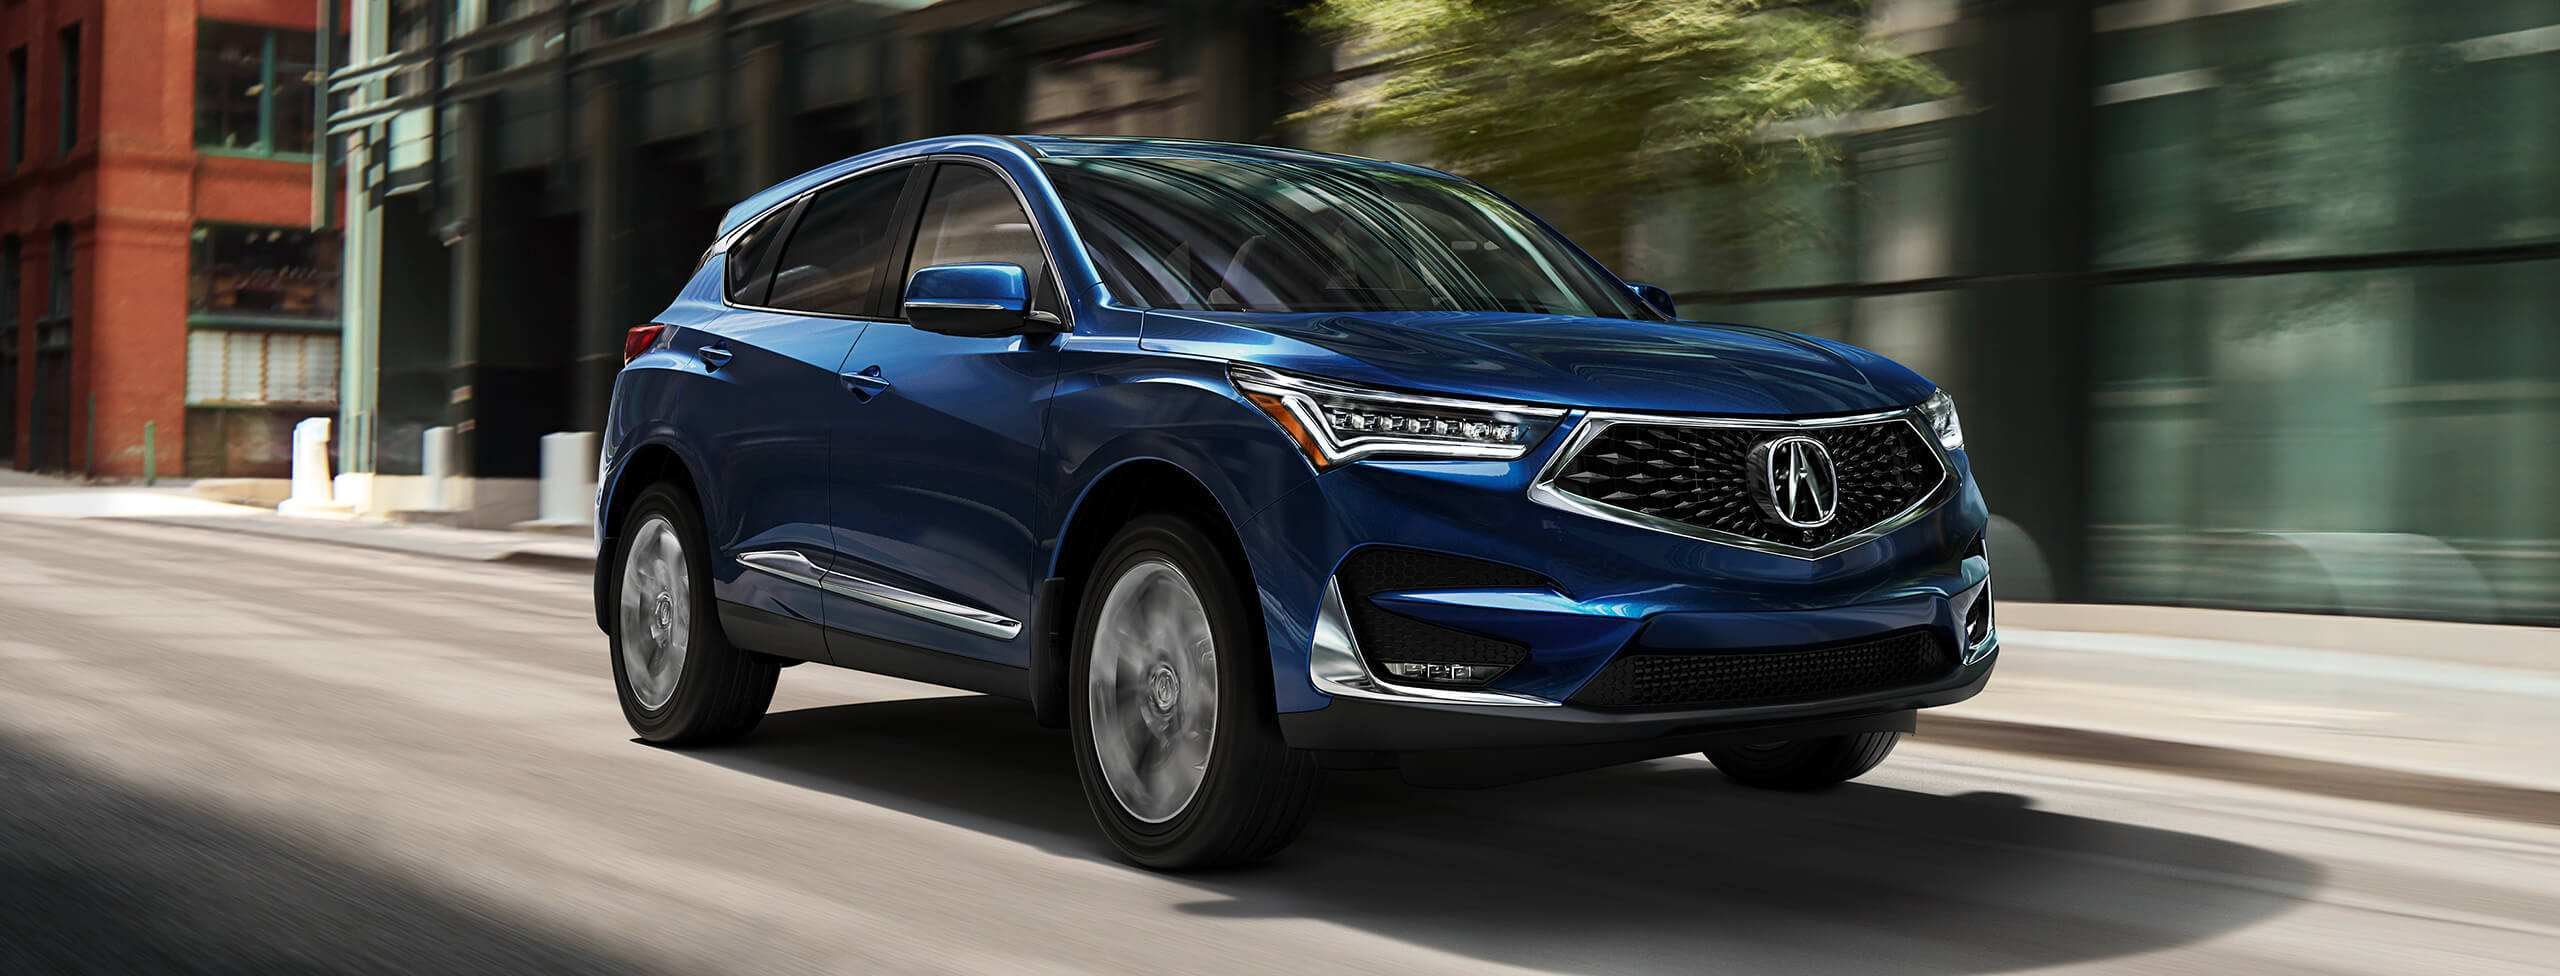 59 A Acura Canada 2020 Mdx Review And Release Date